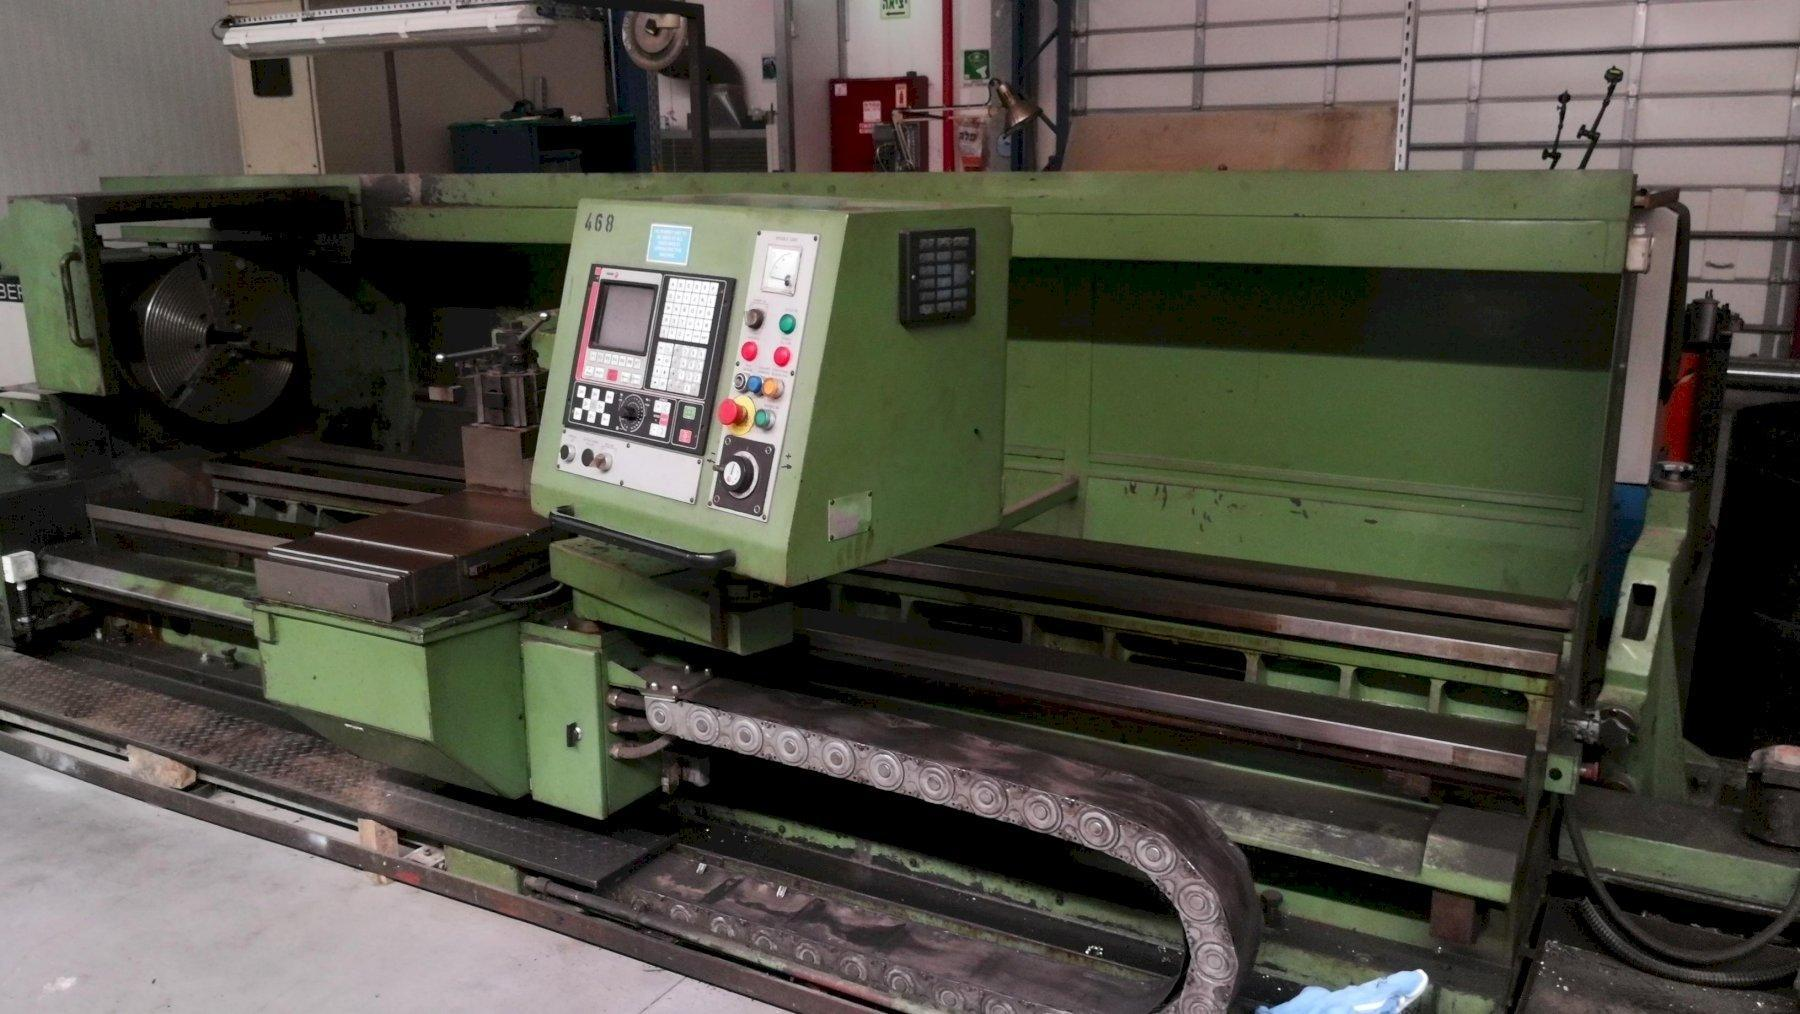 BINNS & BERRY CNC DOUBLE GAP BED LATHE, MODEL TRIDENT 800 PRESENTED BY: OCI MACHINERY – 972 (0)53-708-9265 www.oldcityltd.com